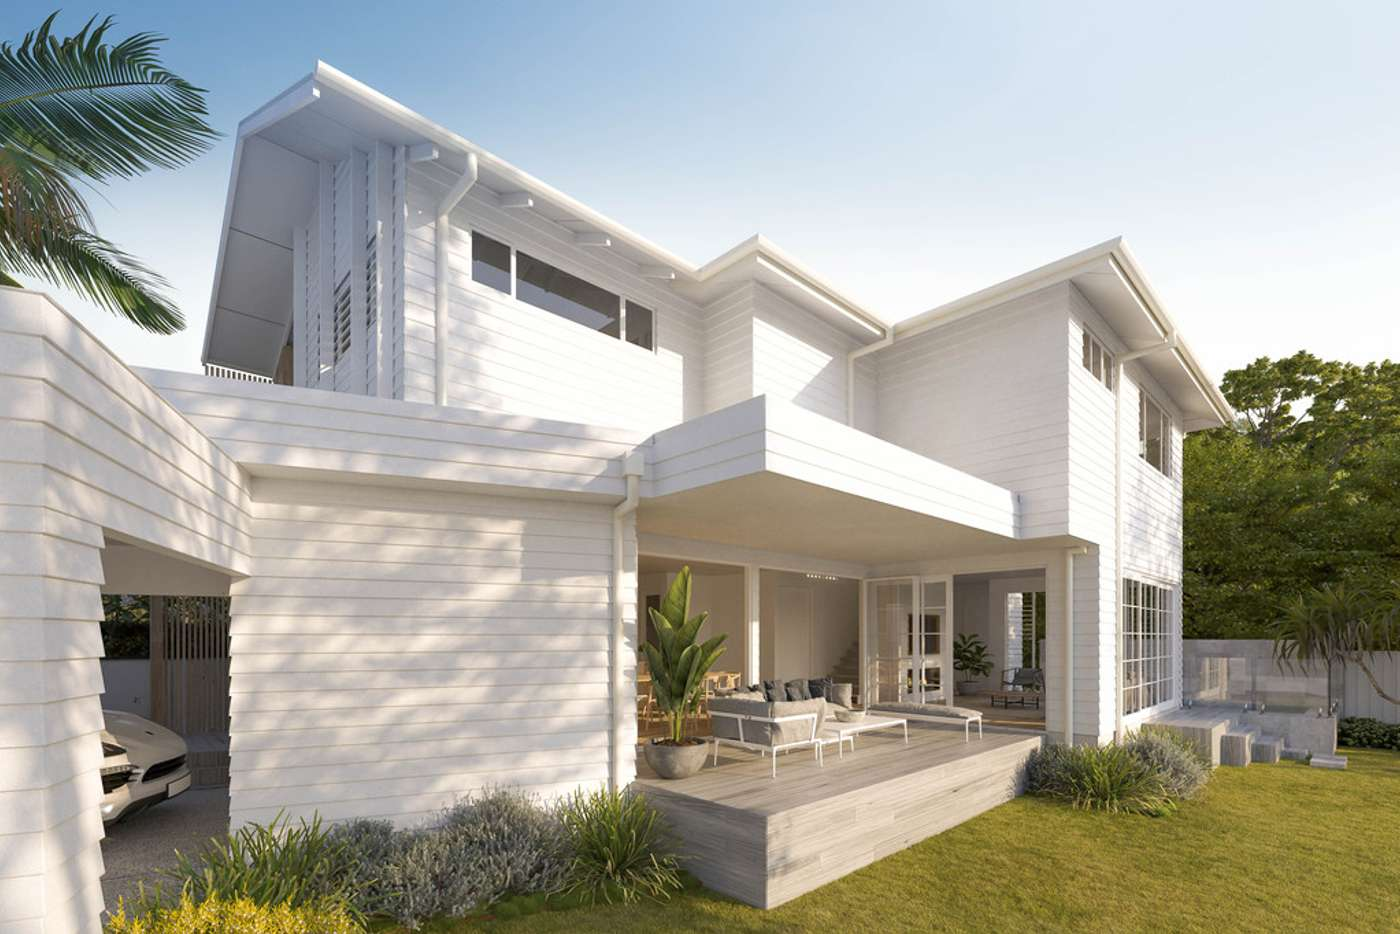 Main view of Homely house listing, 2 Blackwood Place, Palm Beach QLD 4221